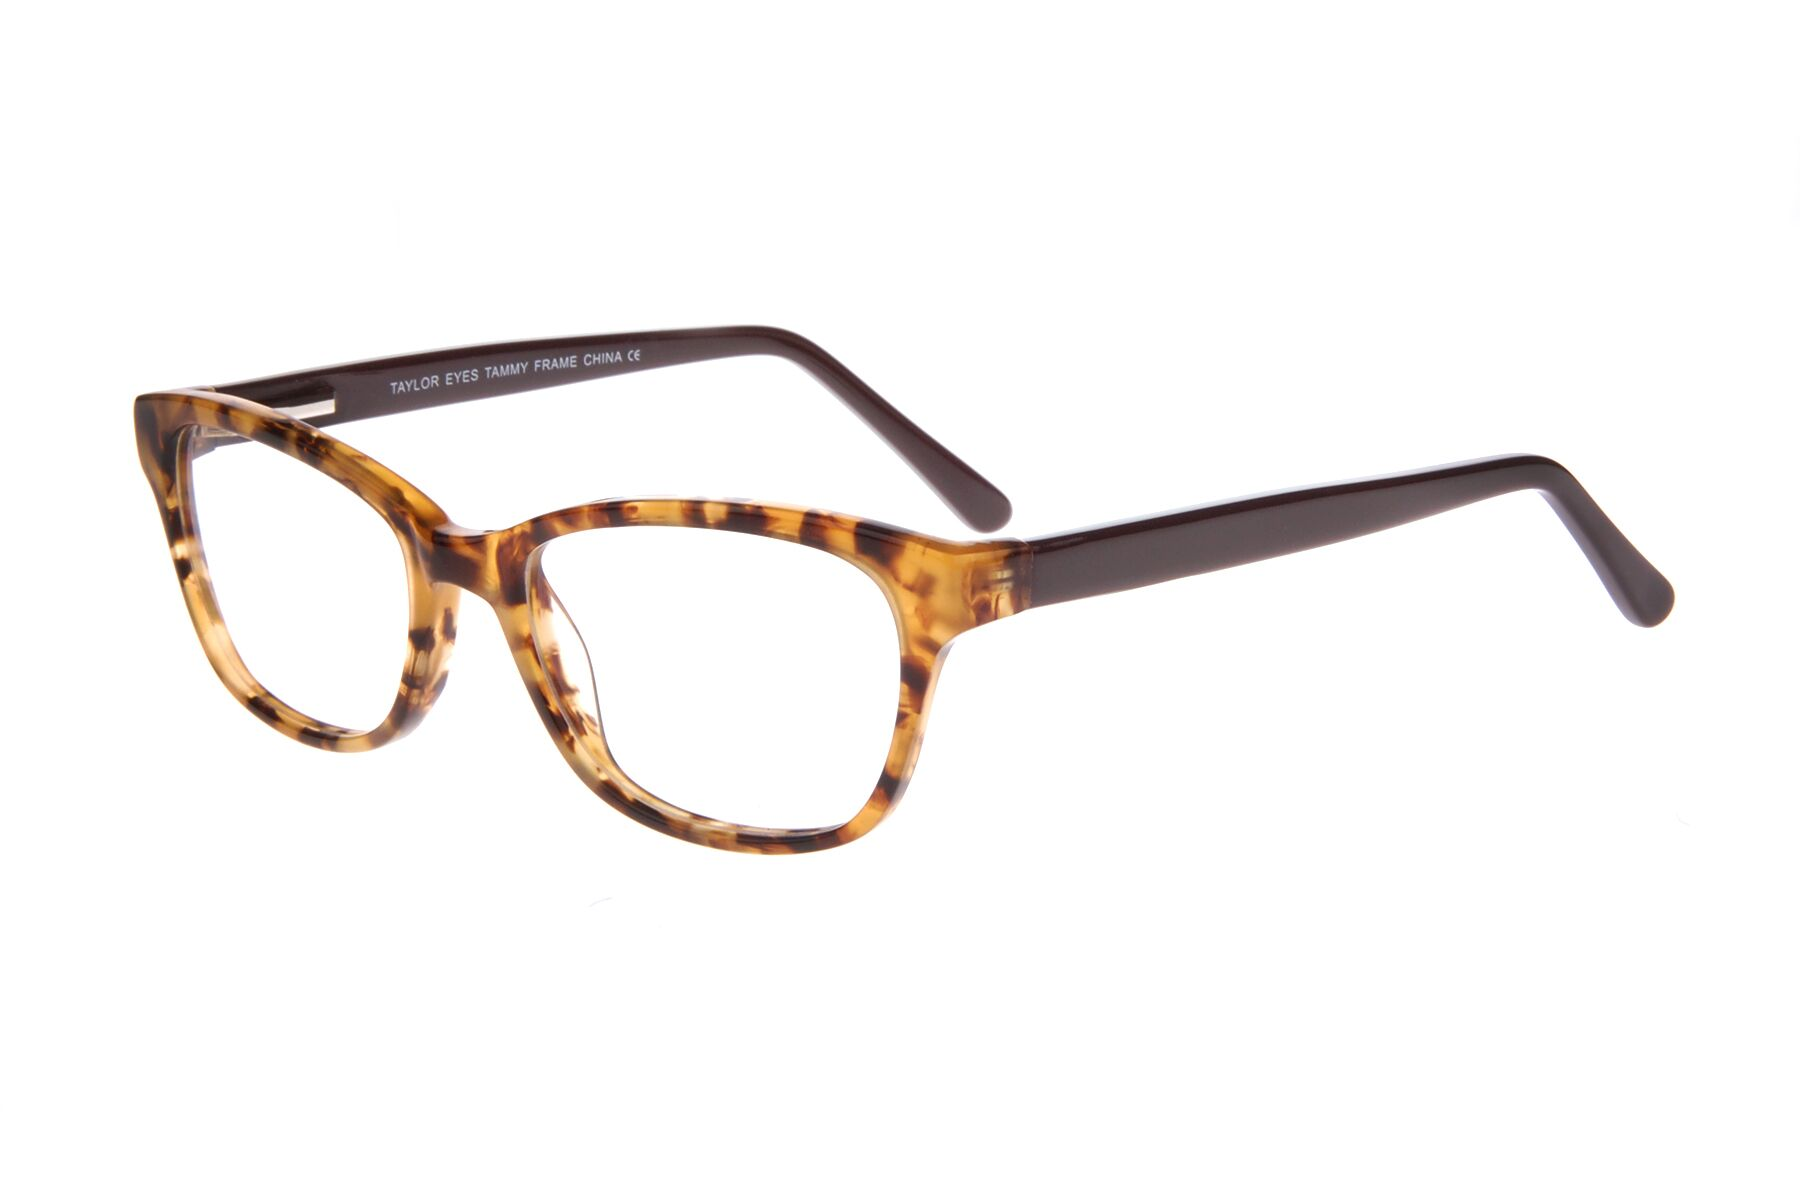 Taylor Eyes Tammy is available at SpecsToGo-Eyeglasses and Sunglasses